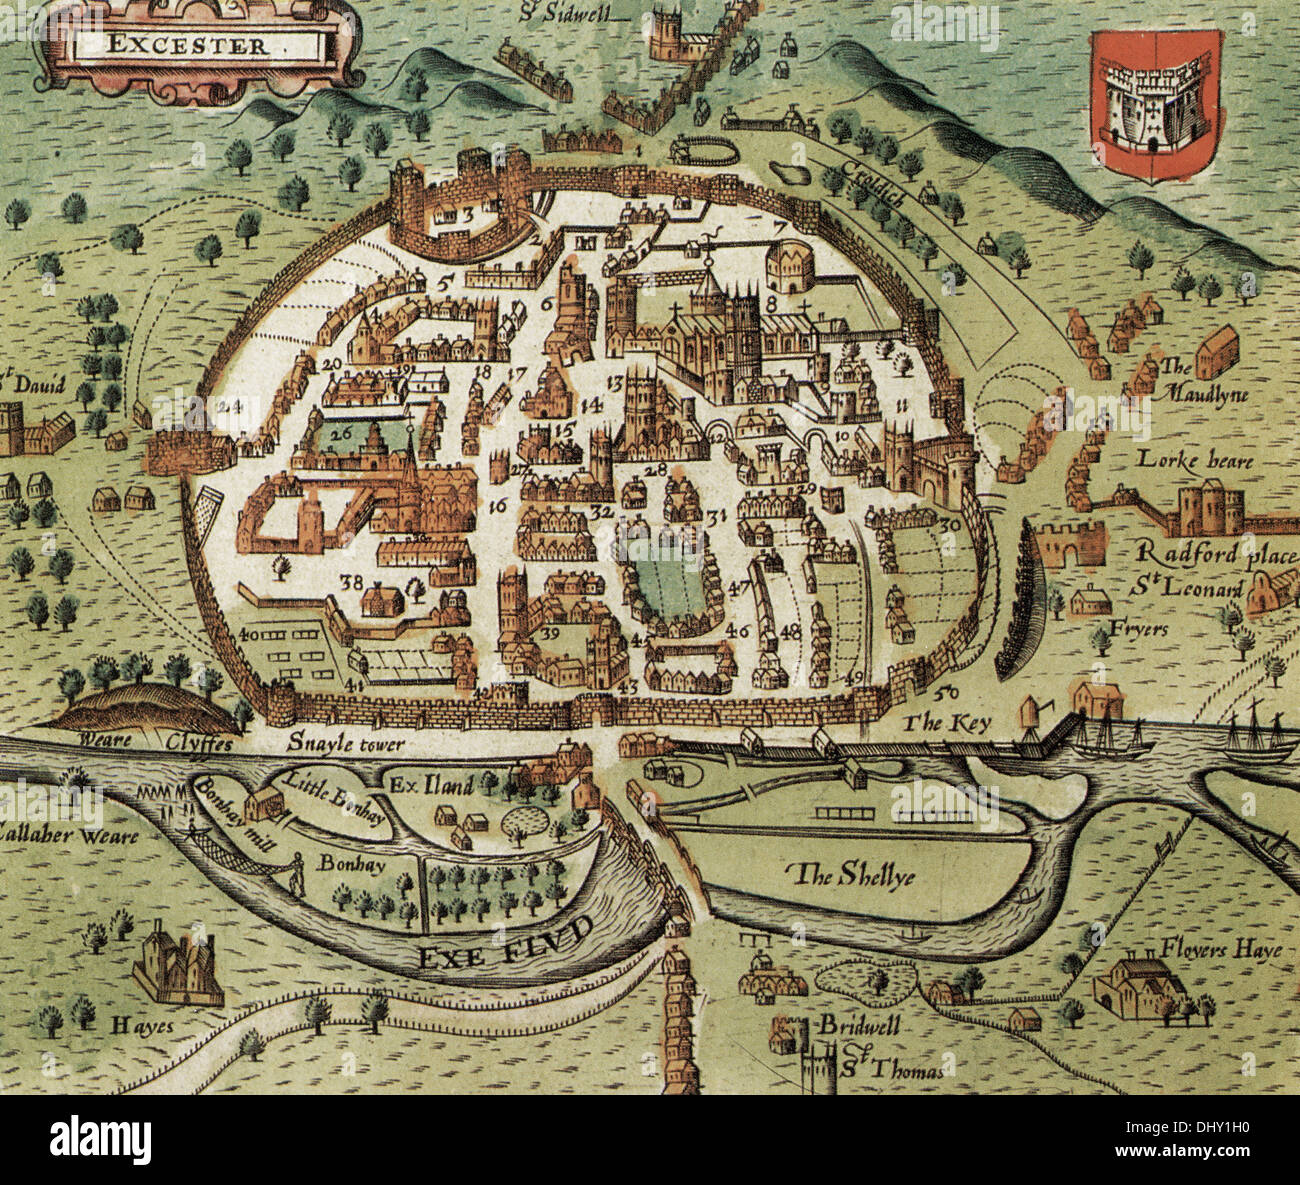 Old map of Exeter England by John Speed 1611 Stock Photo